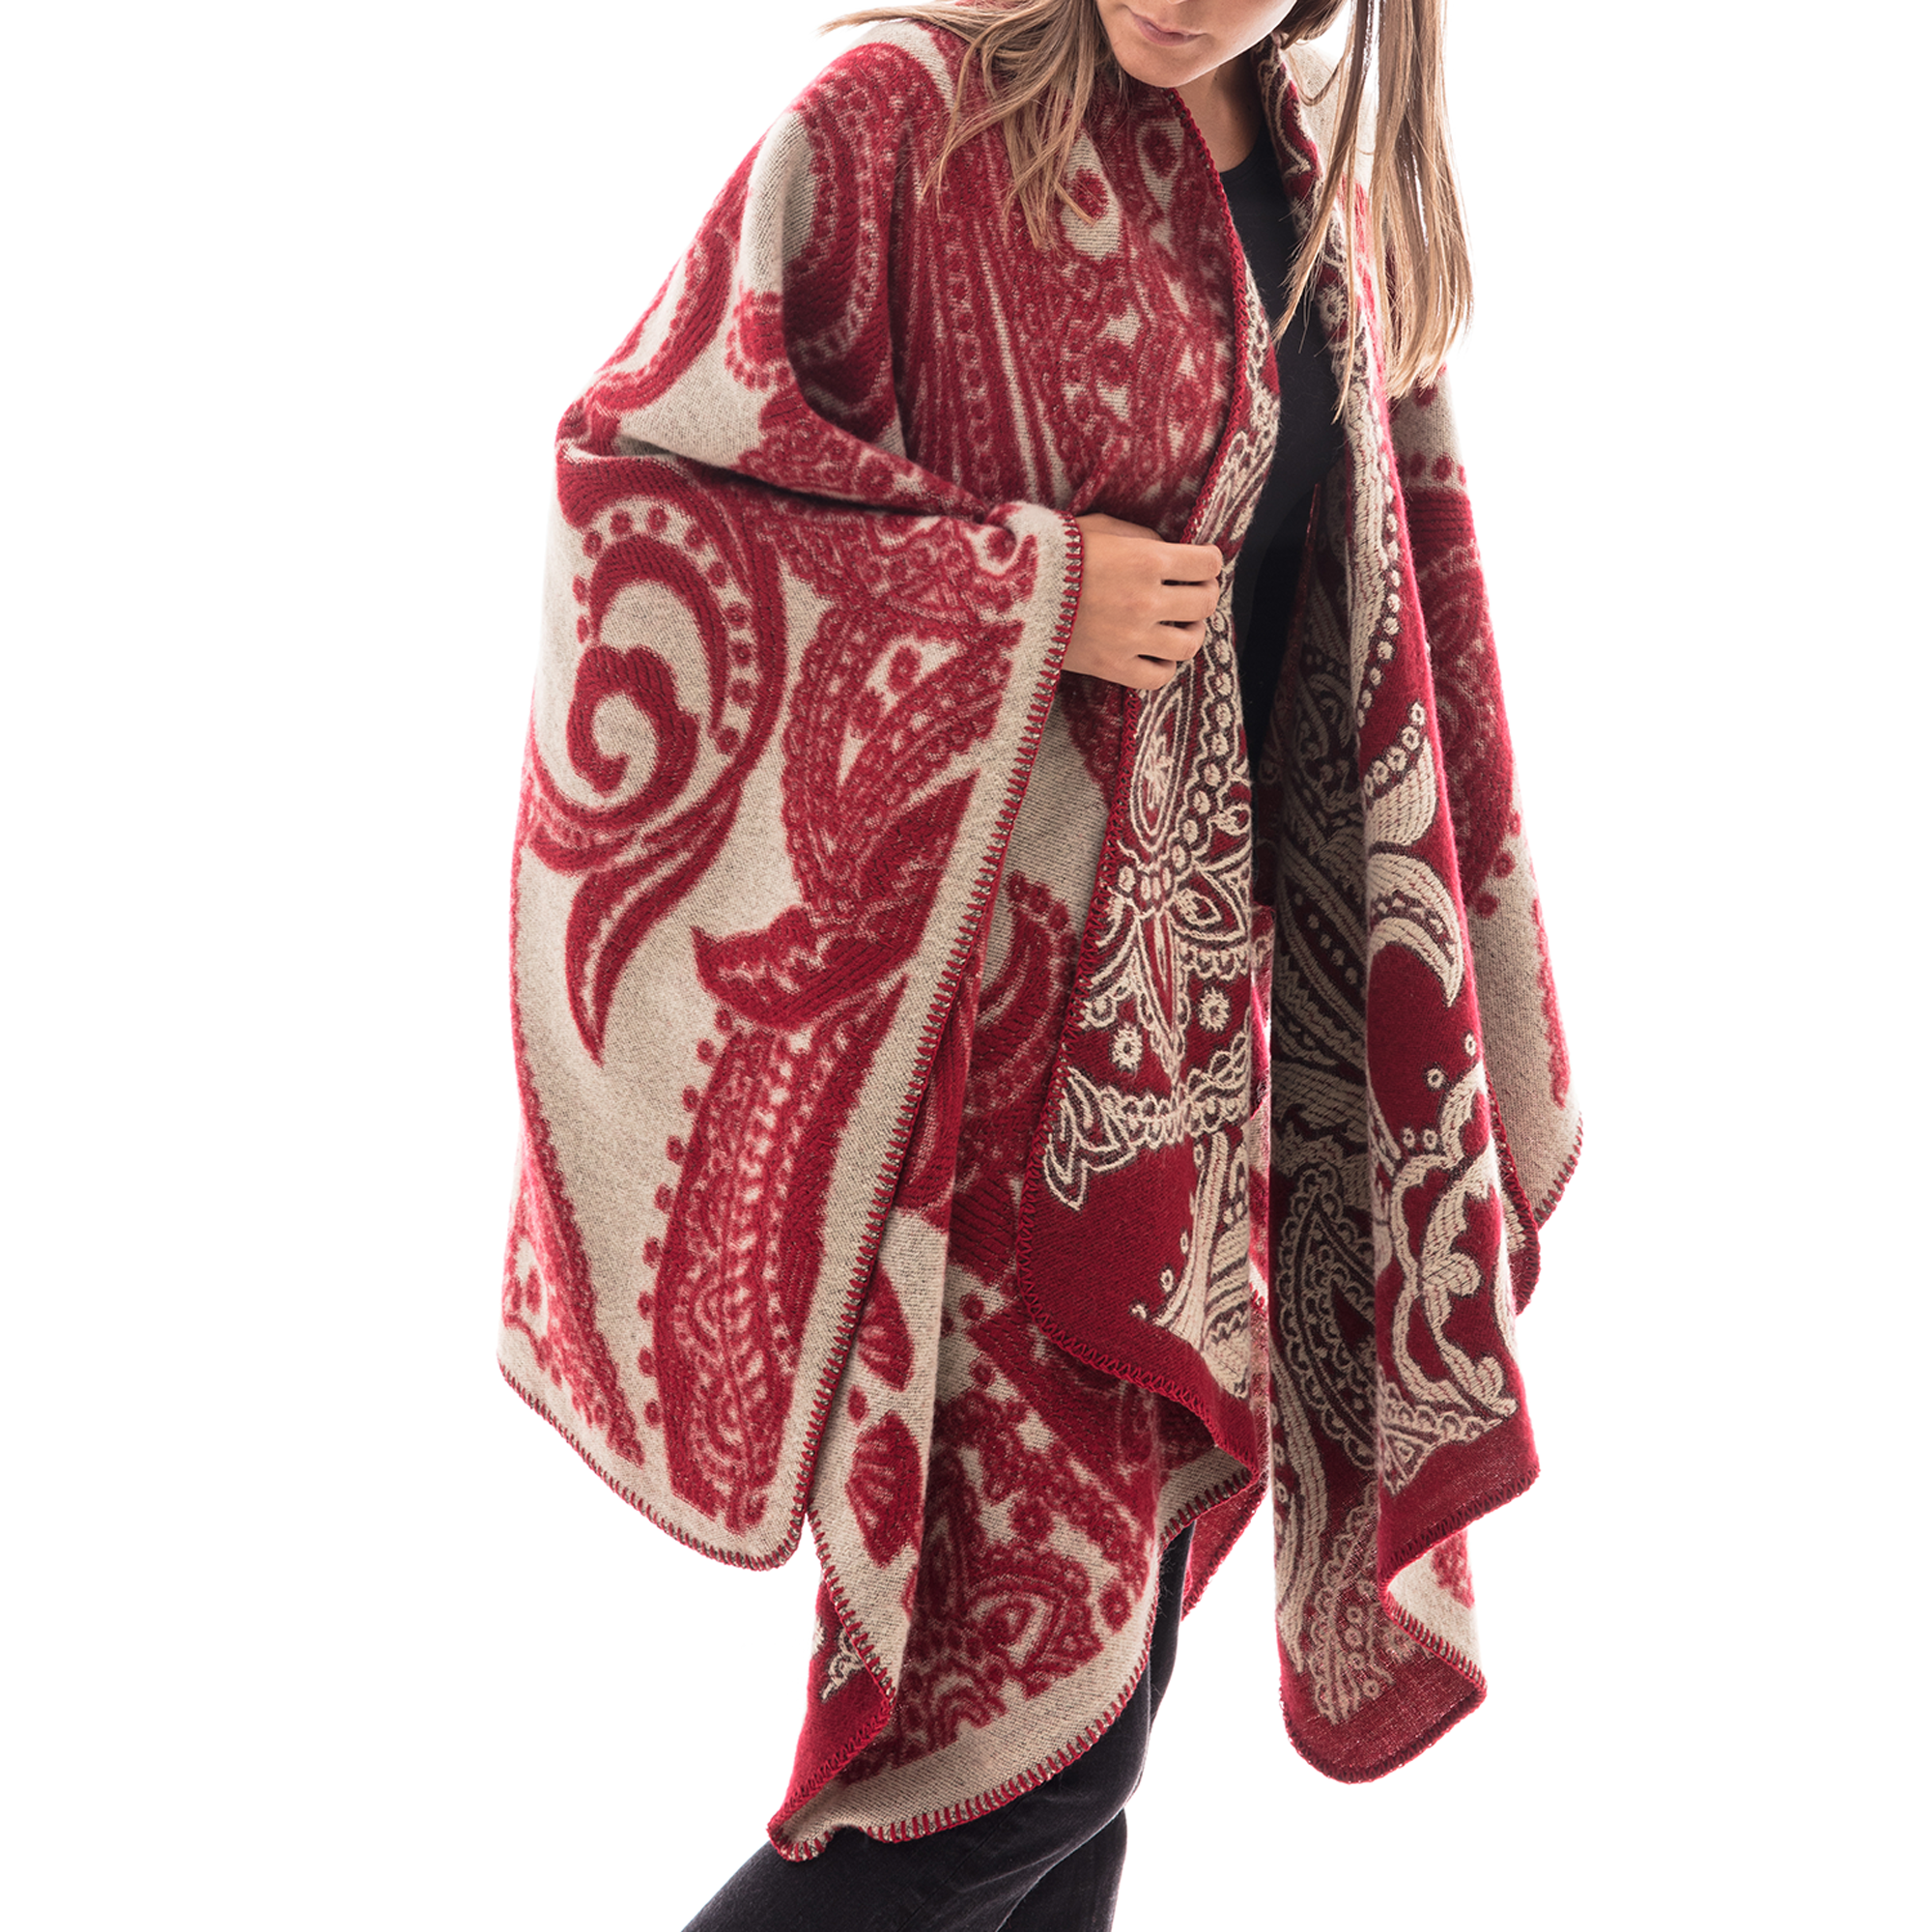 Poncho rosso con stampa paisley in tessuto